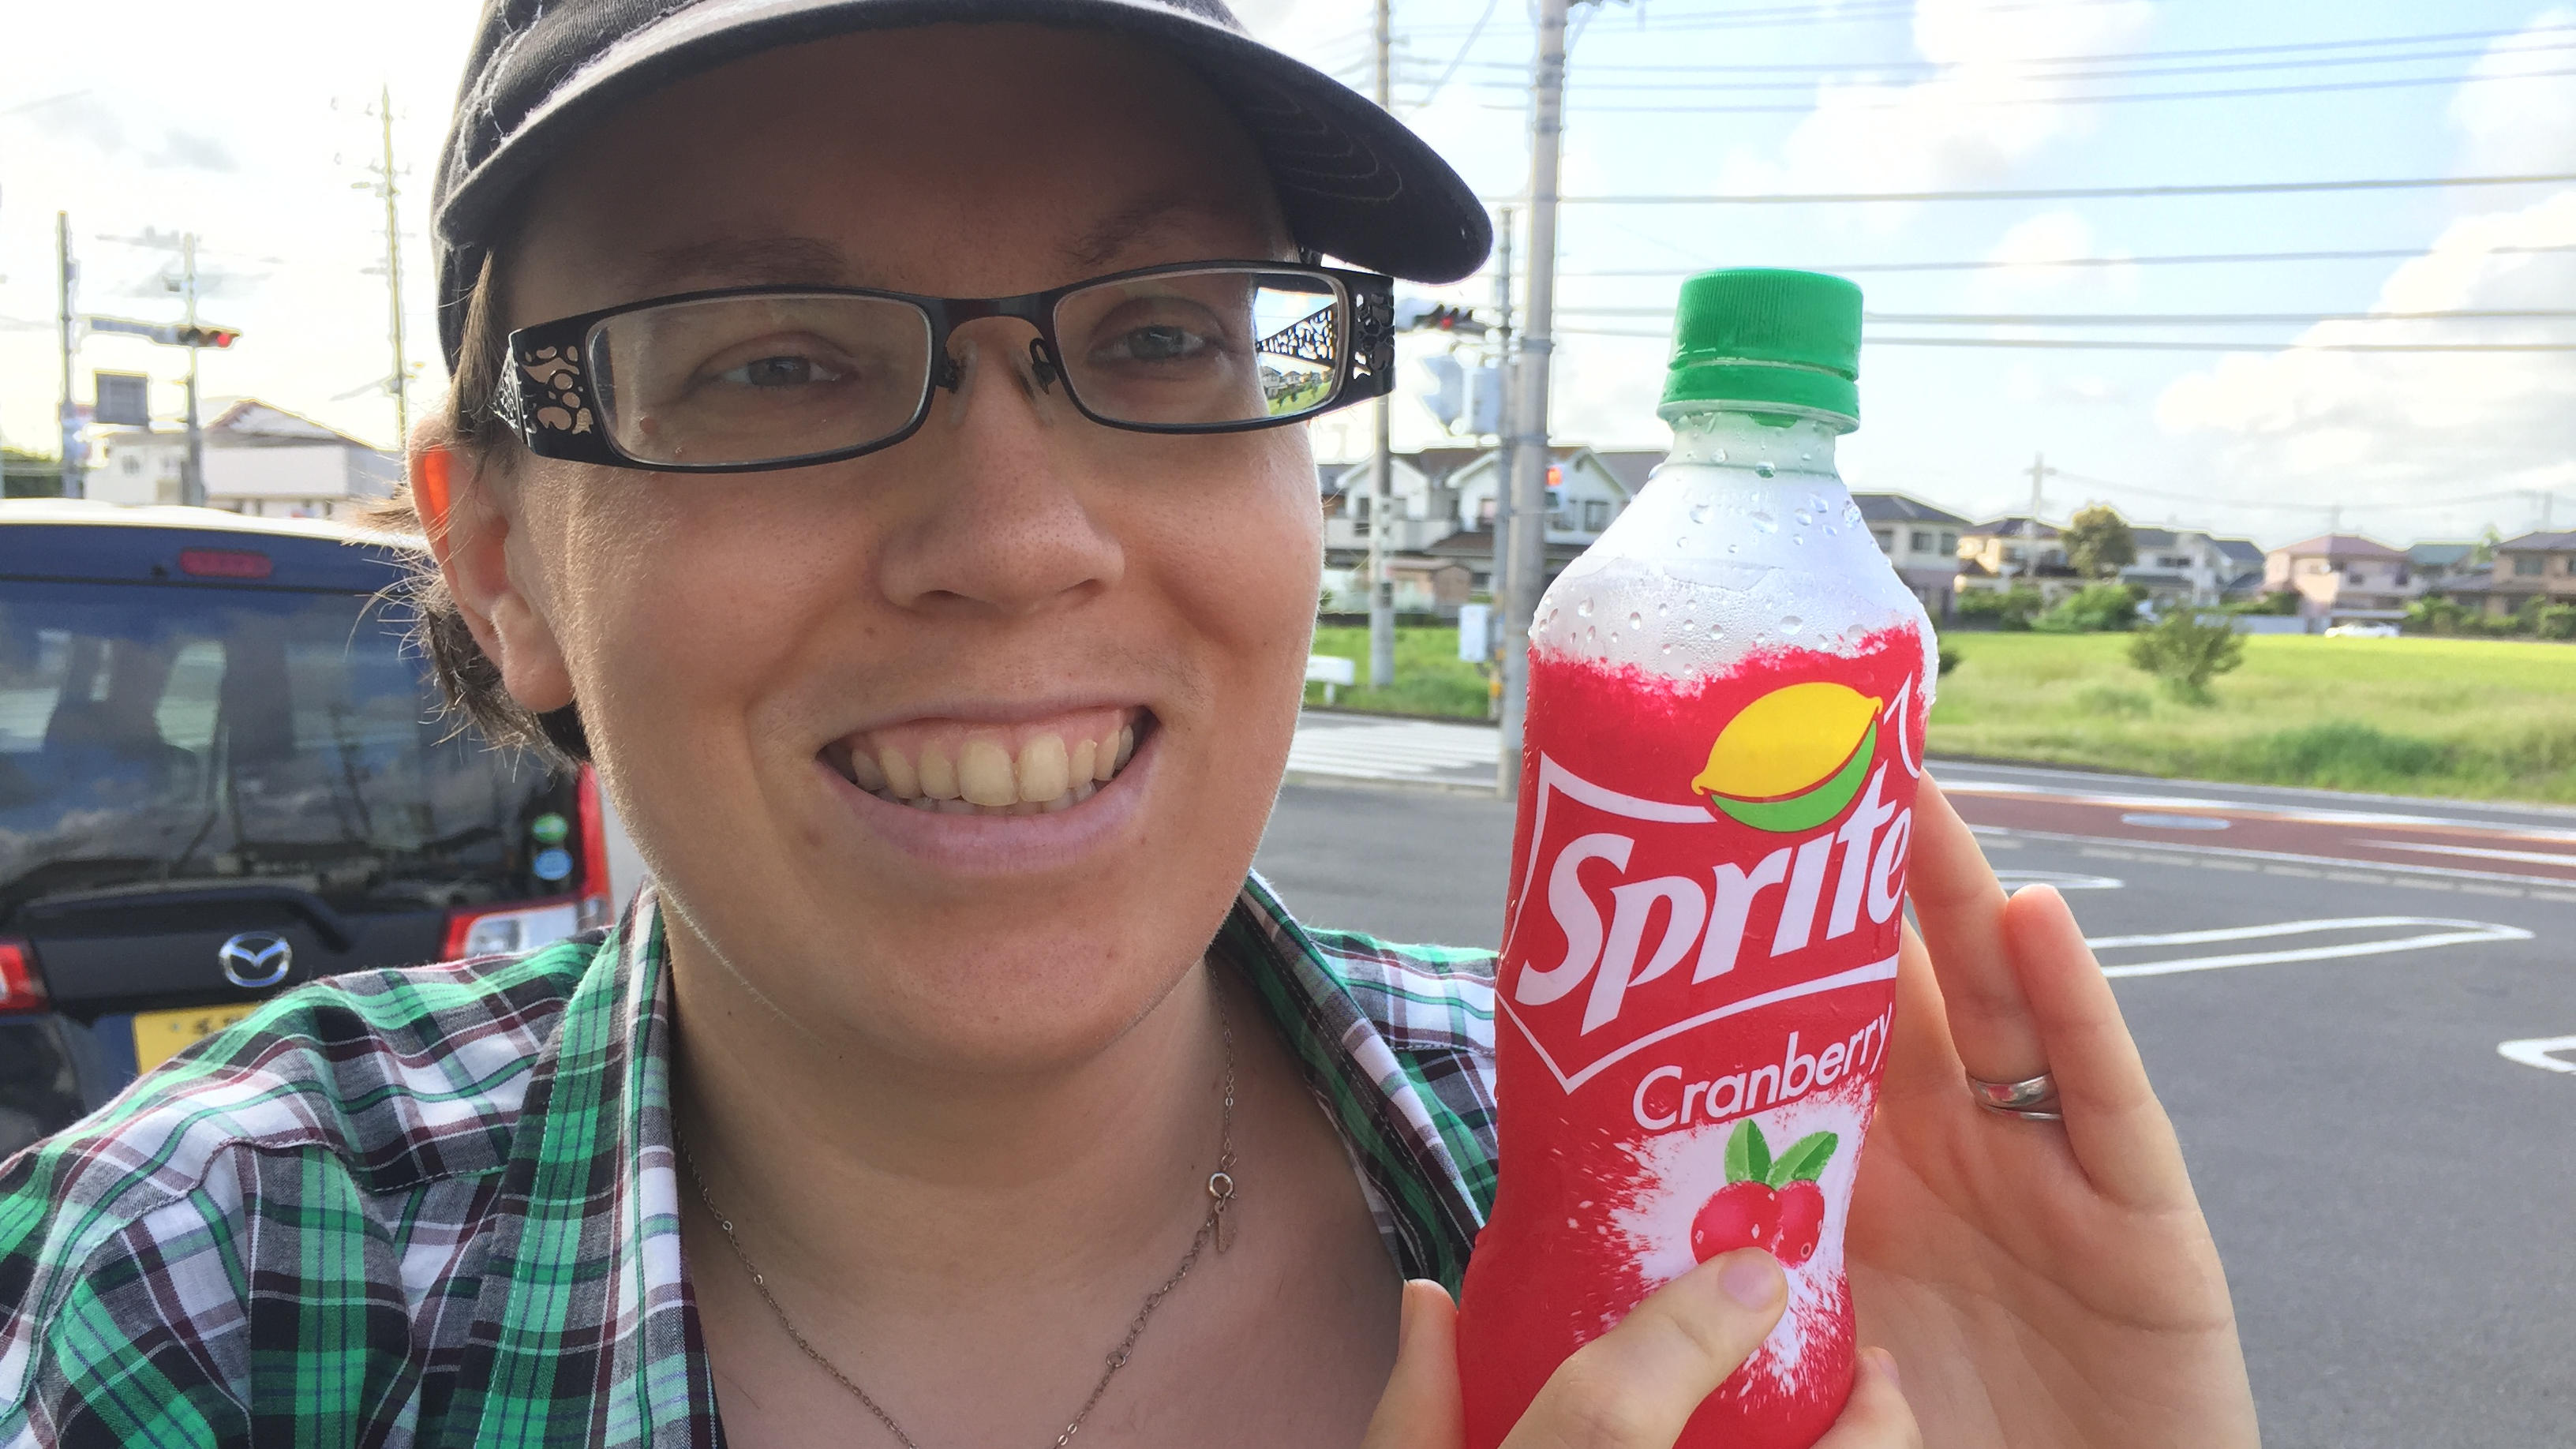 Review: Cranberry Sprite